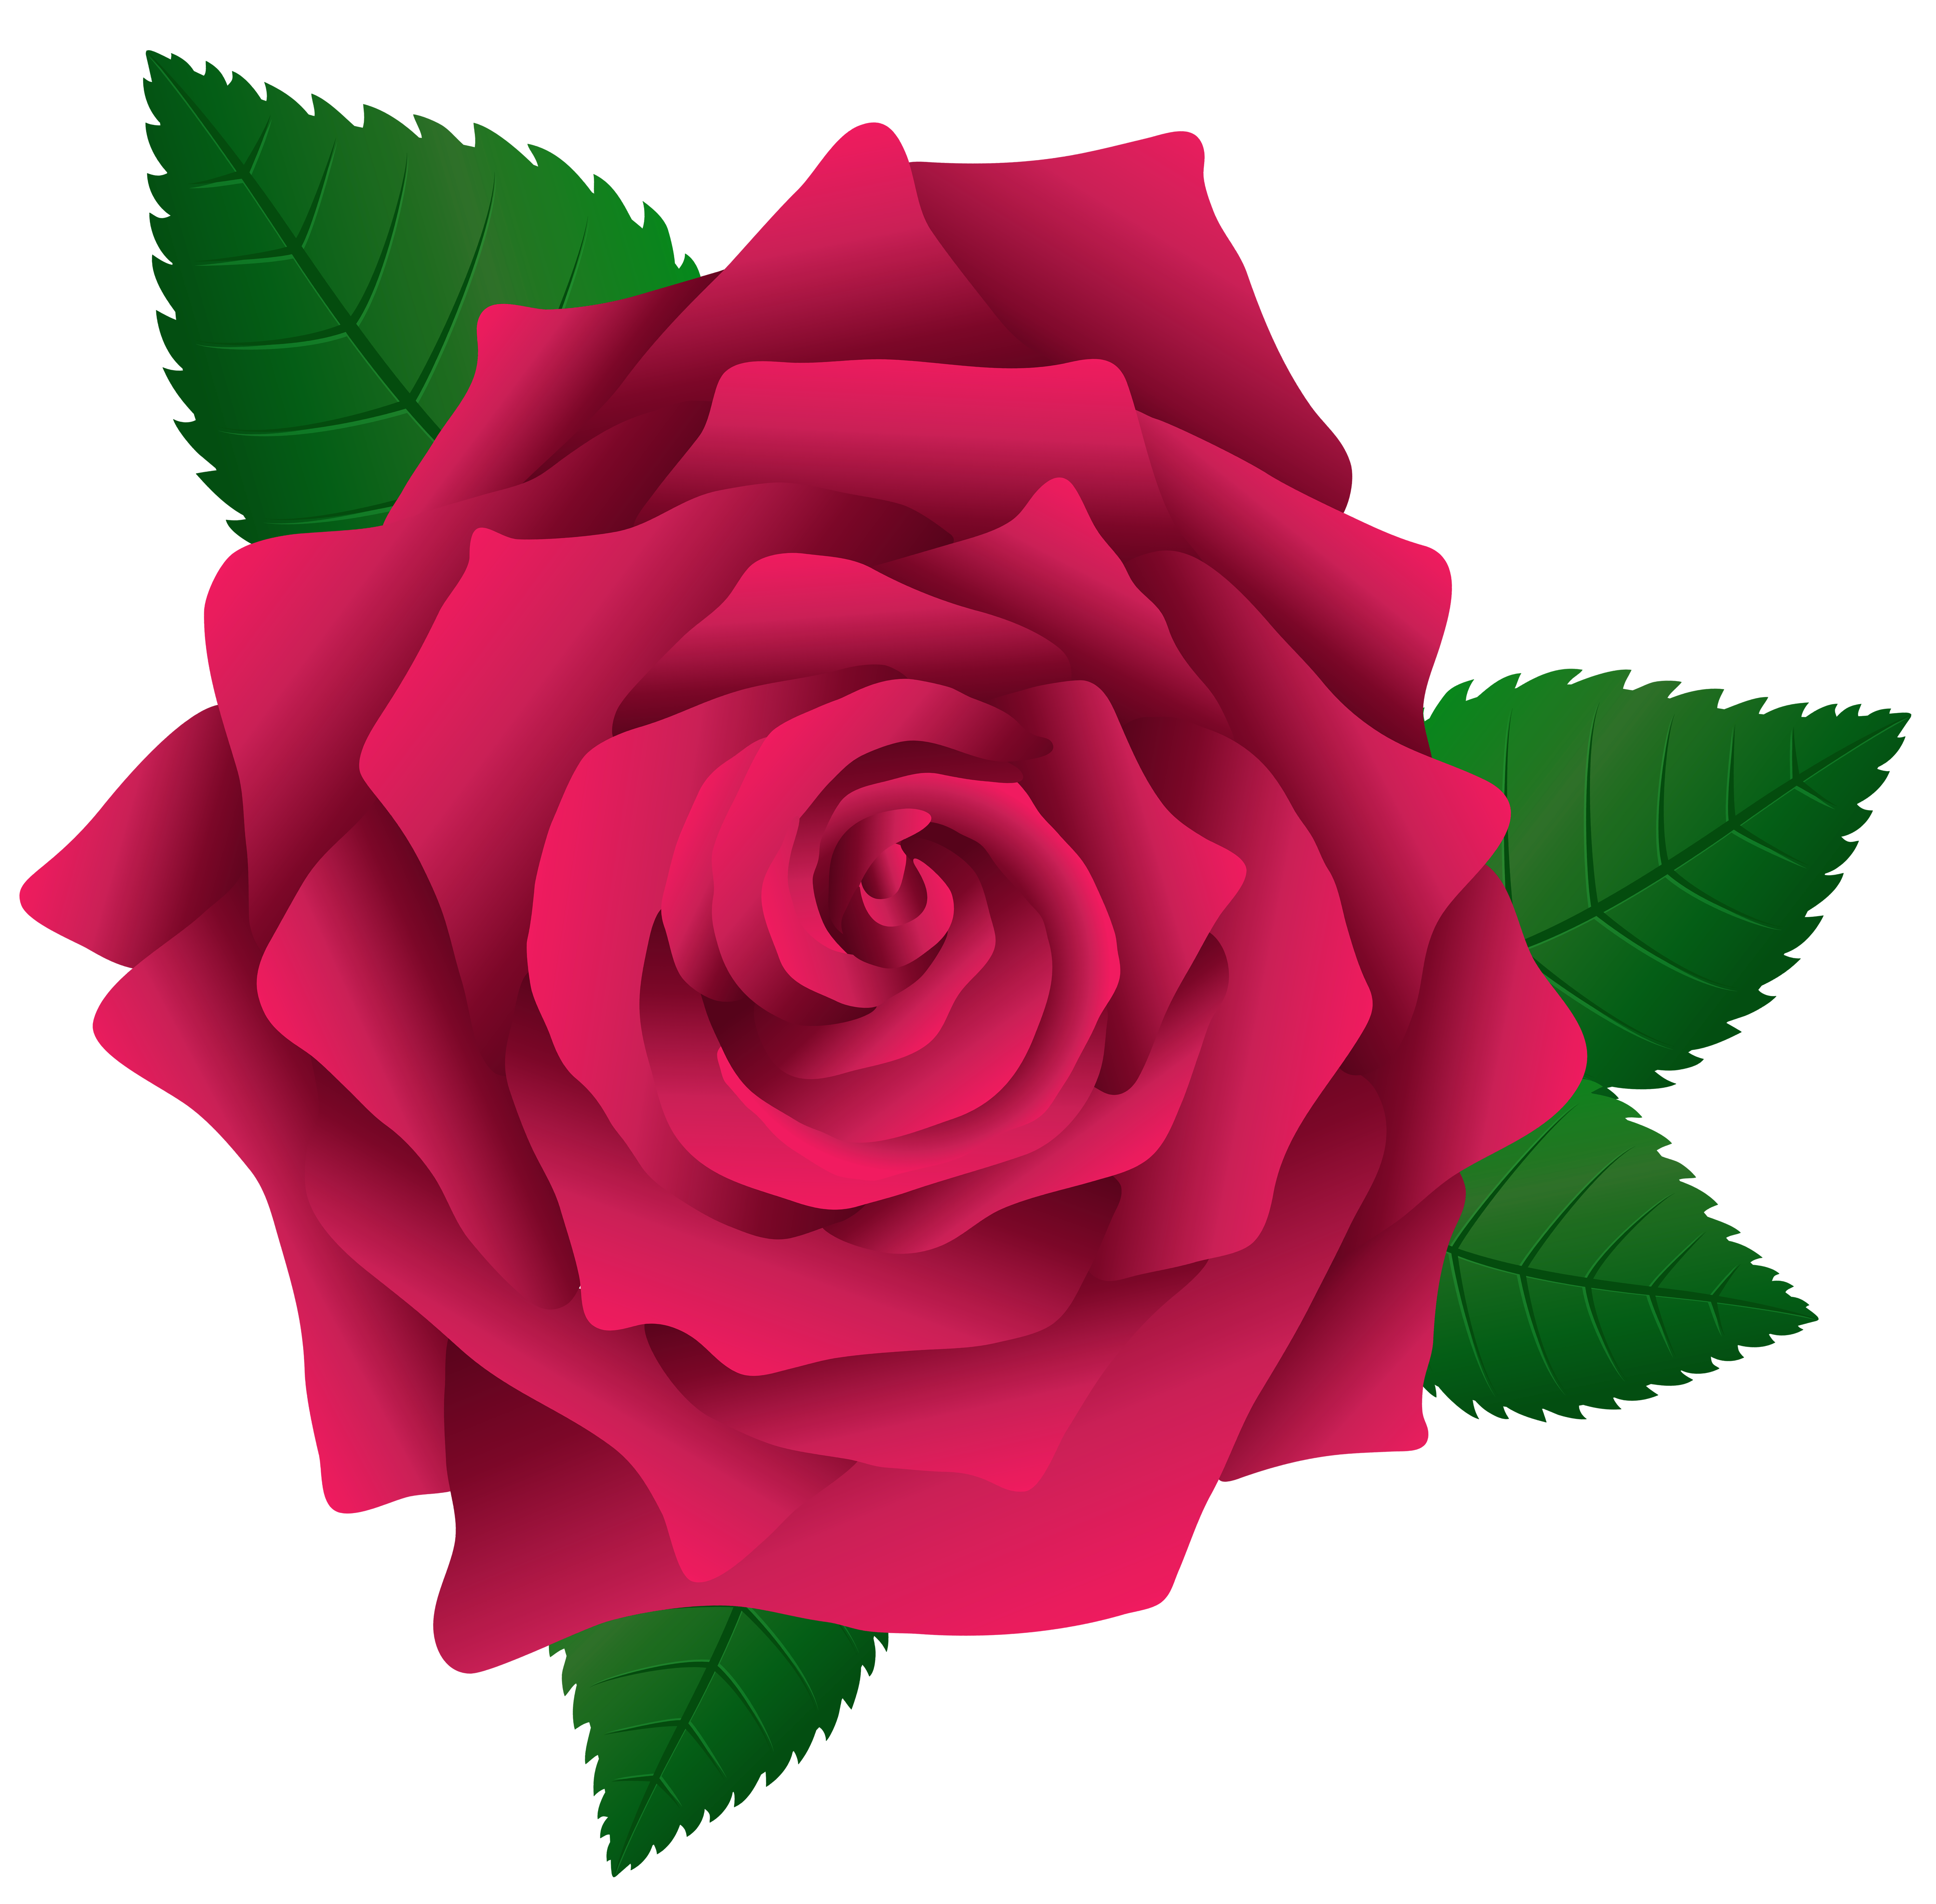 Roses clipart png. Pink rose image gallery